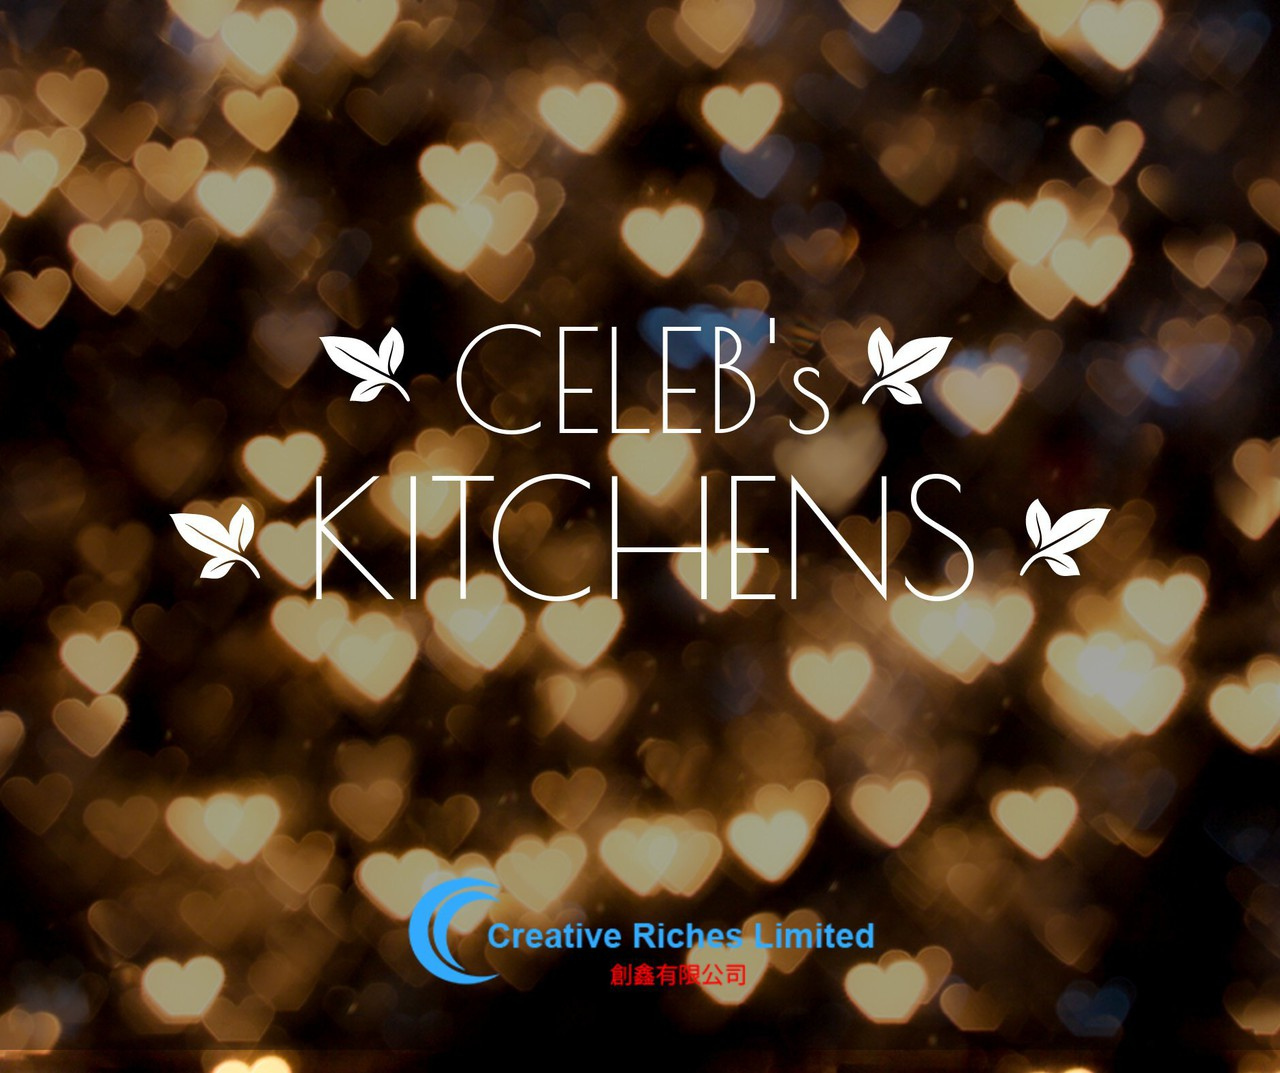 Celeb's Kitchens Highlighted by Creative-Riches Limited